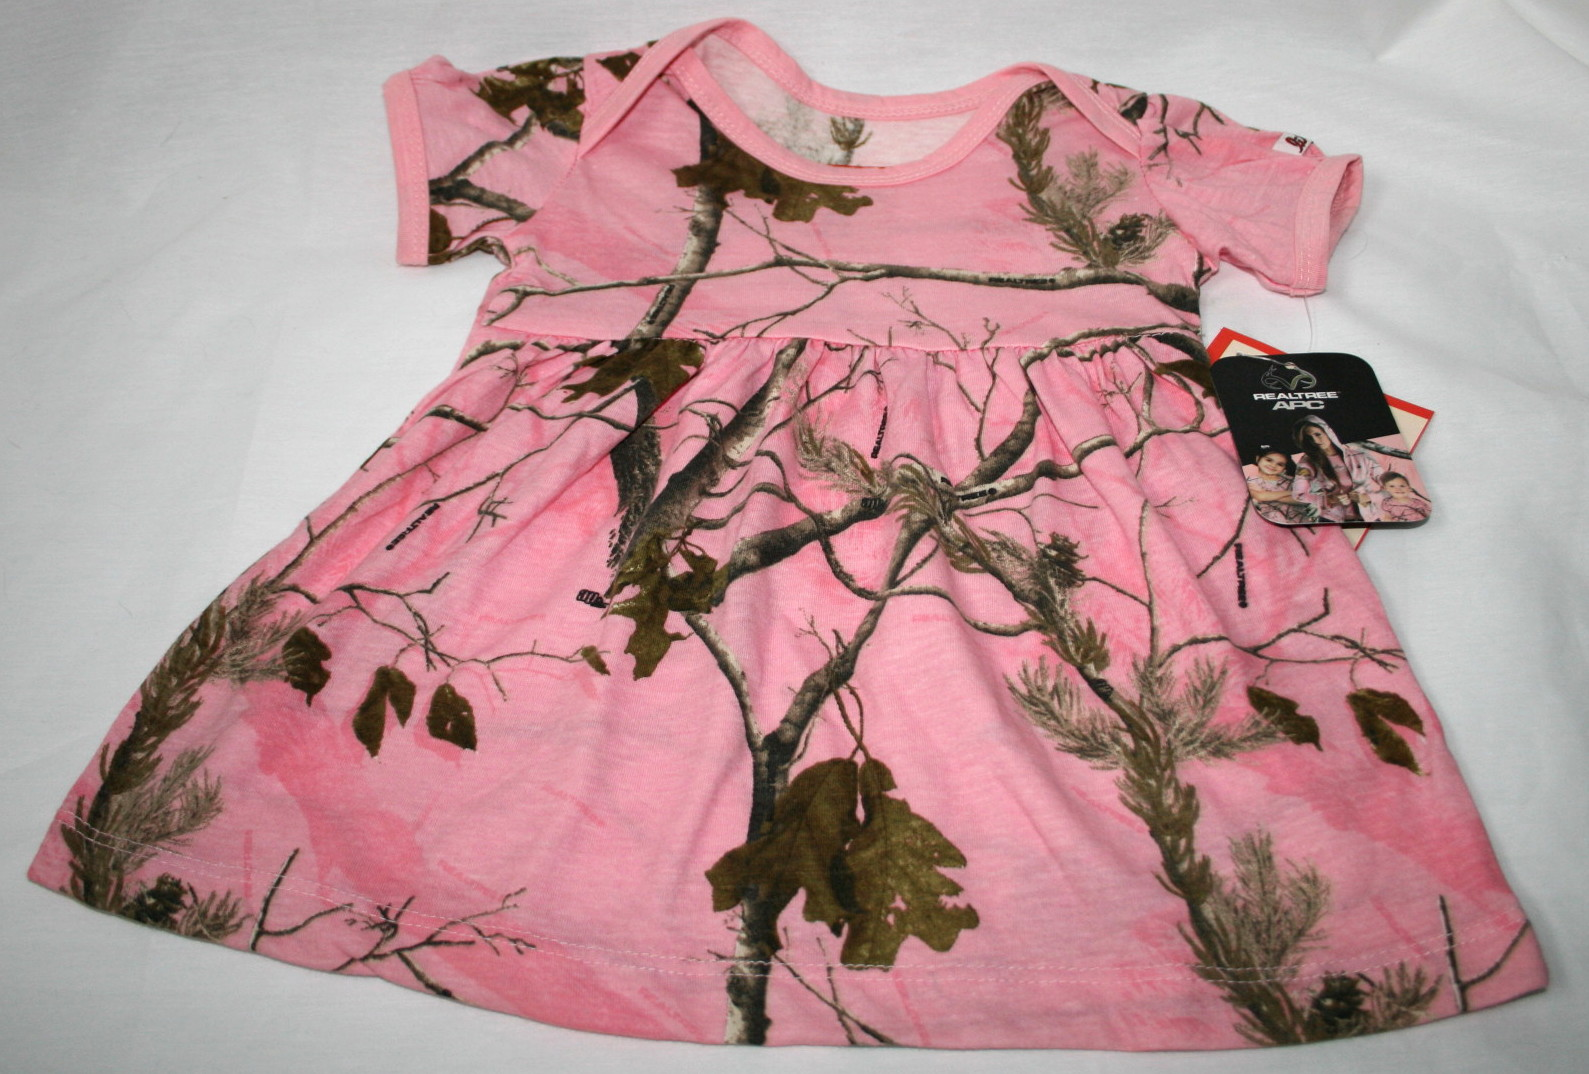 Realtree pink camo baby toddler dress